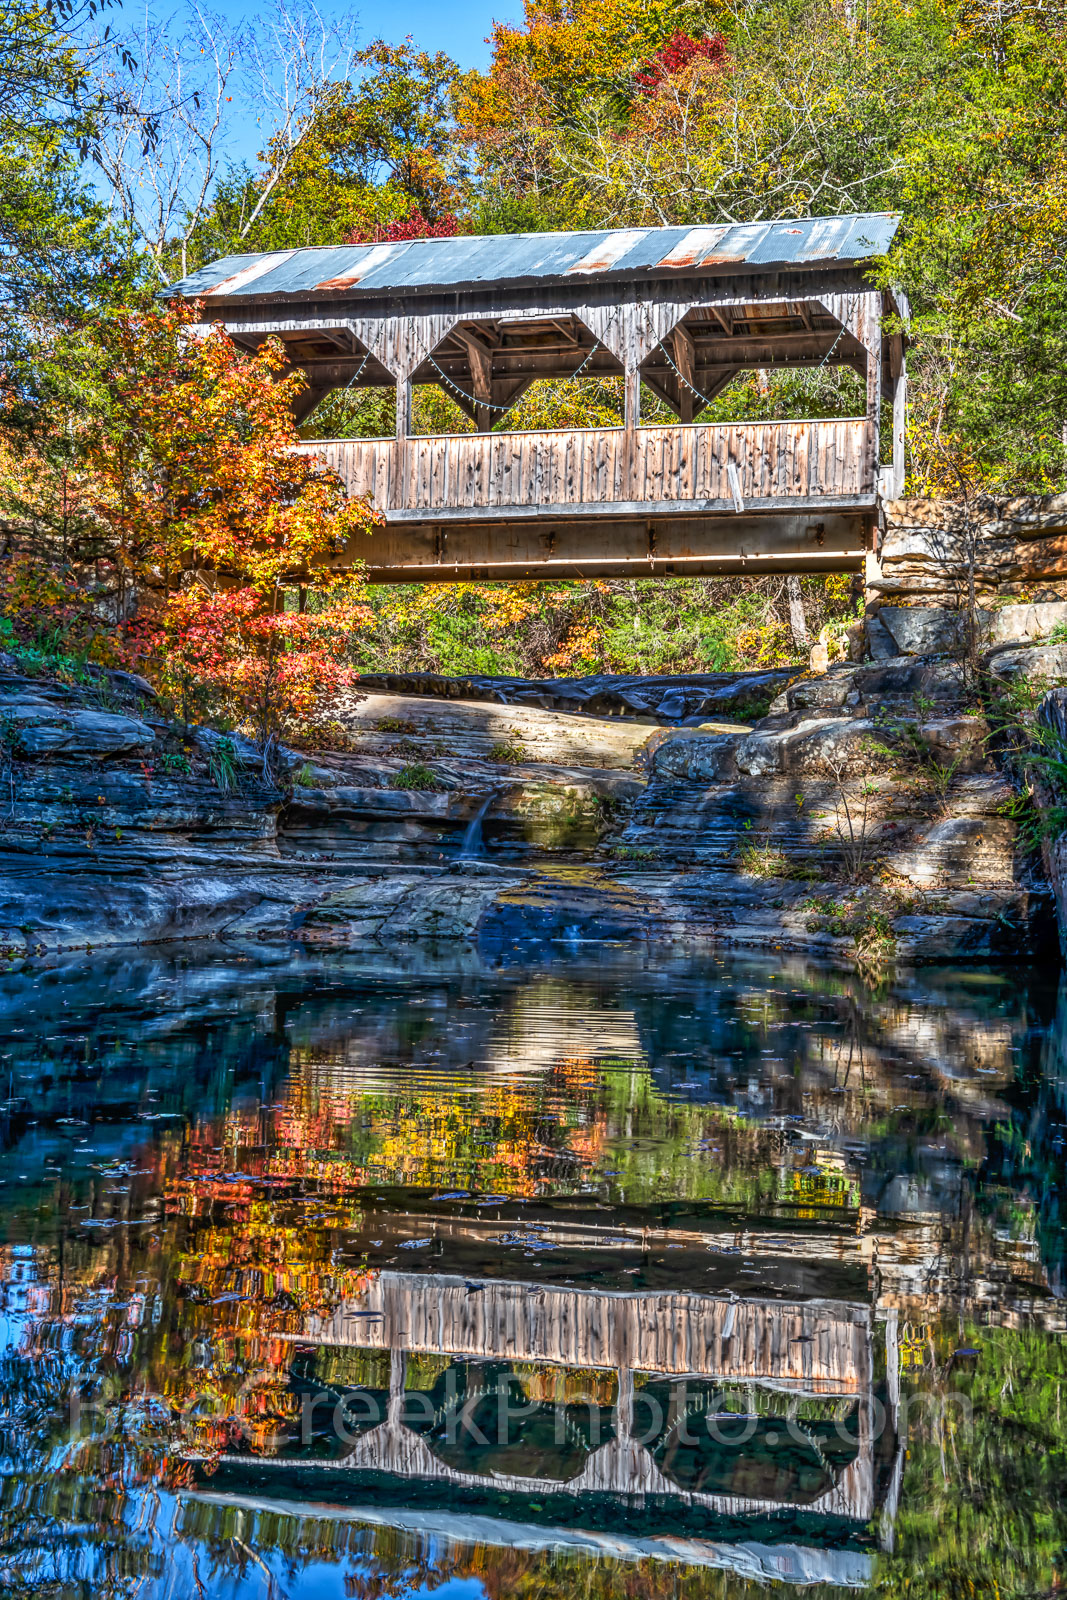 covered bridge, ozarks, fall, autumn, bridge, colors, reflection, autumn, day, pool, water, creek,natural, wilderness, forest, vertical, fall scenery, fall color, , photo